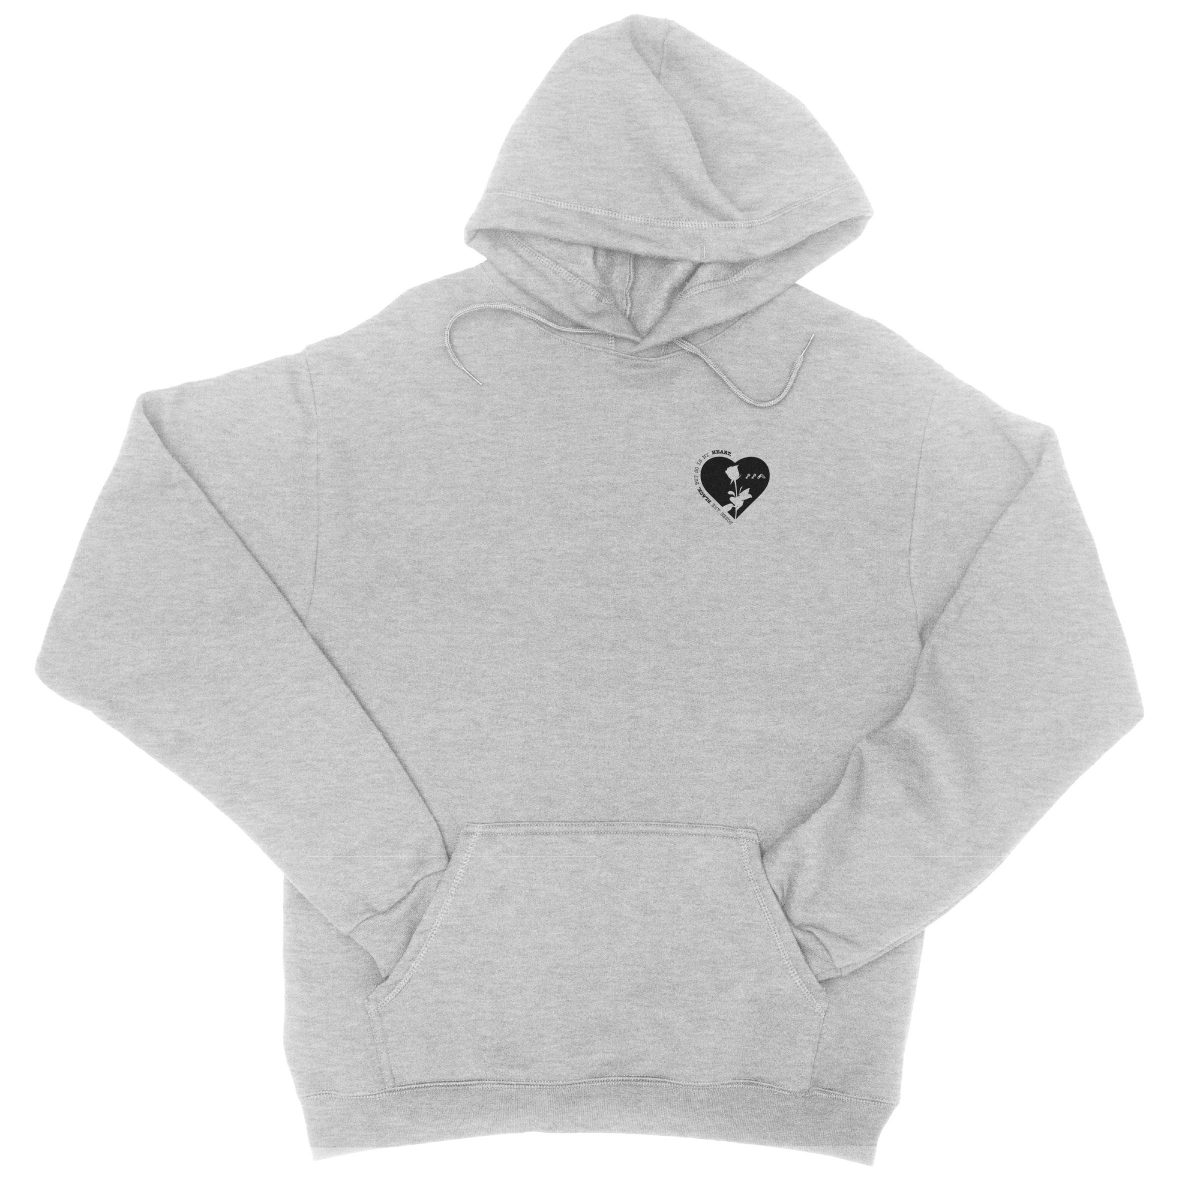 ROSES ARE BLACK BUT SO IS MY HEART hoodie in sport grey by kikicutt